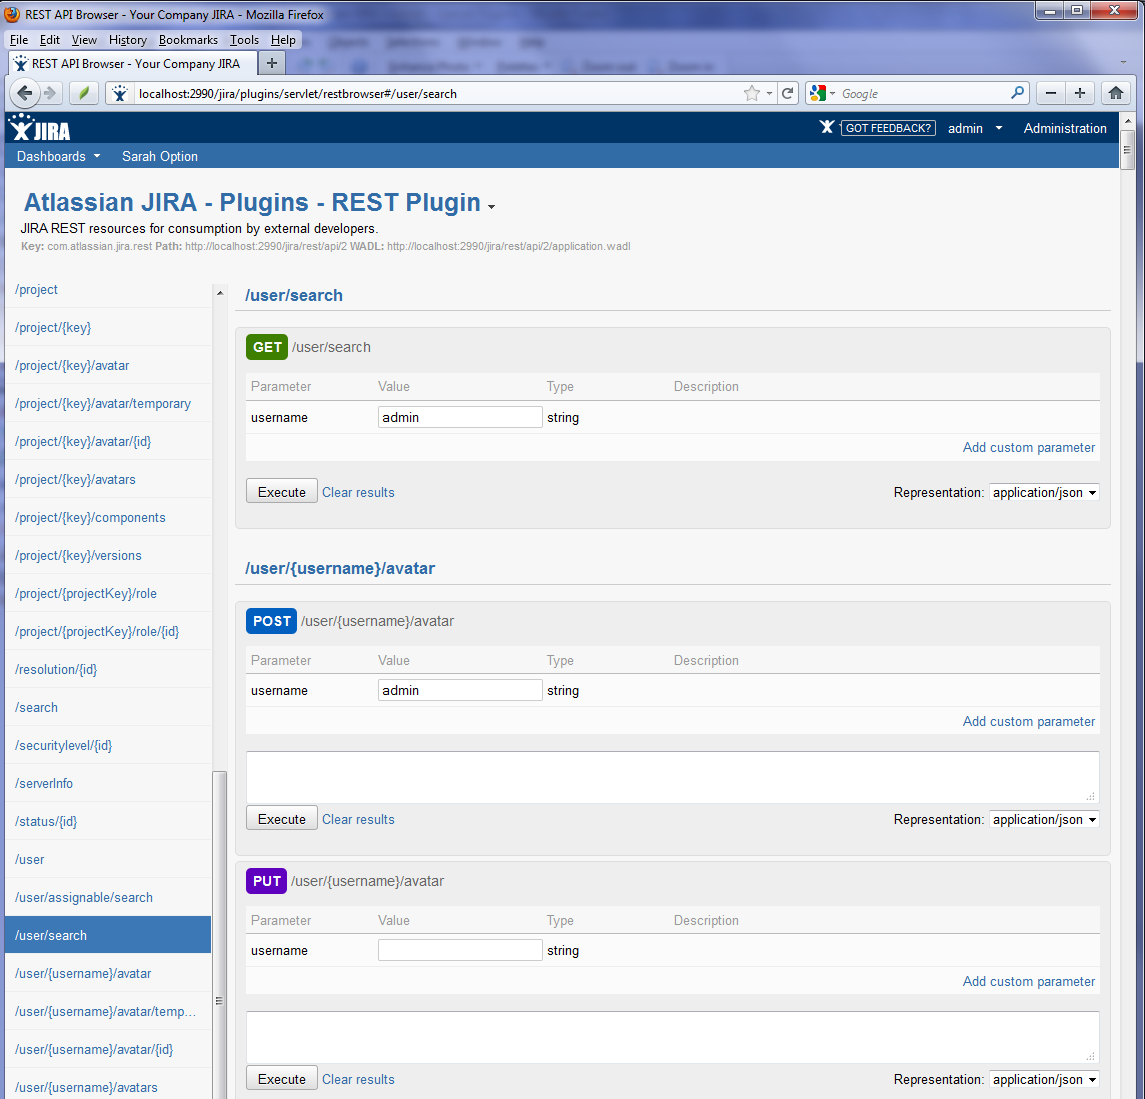 Searching for JIRA issues containing special characters ...